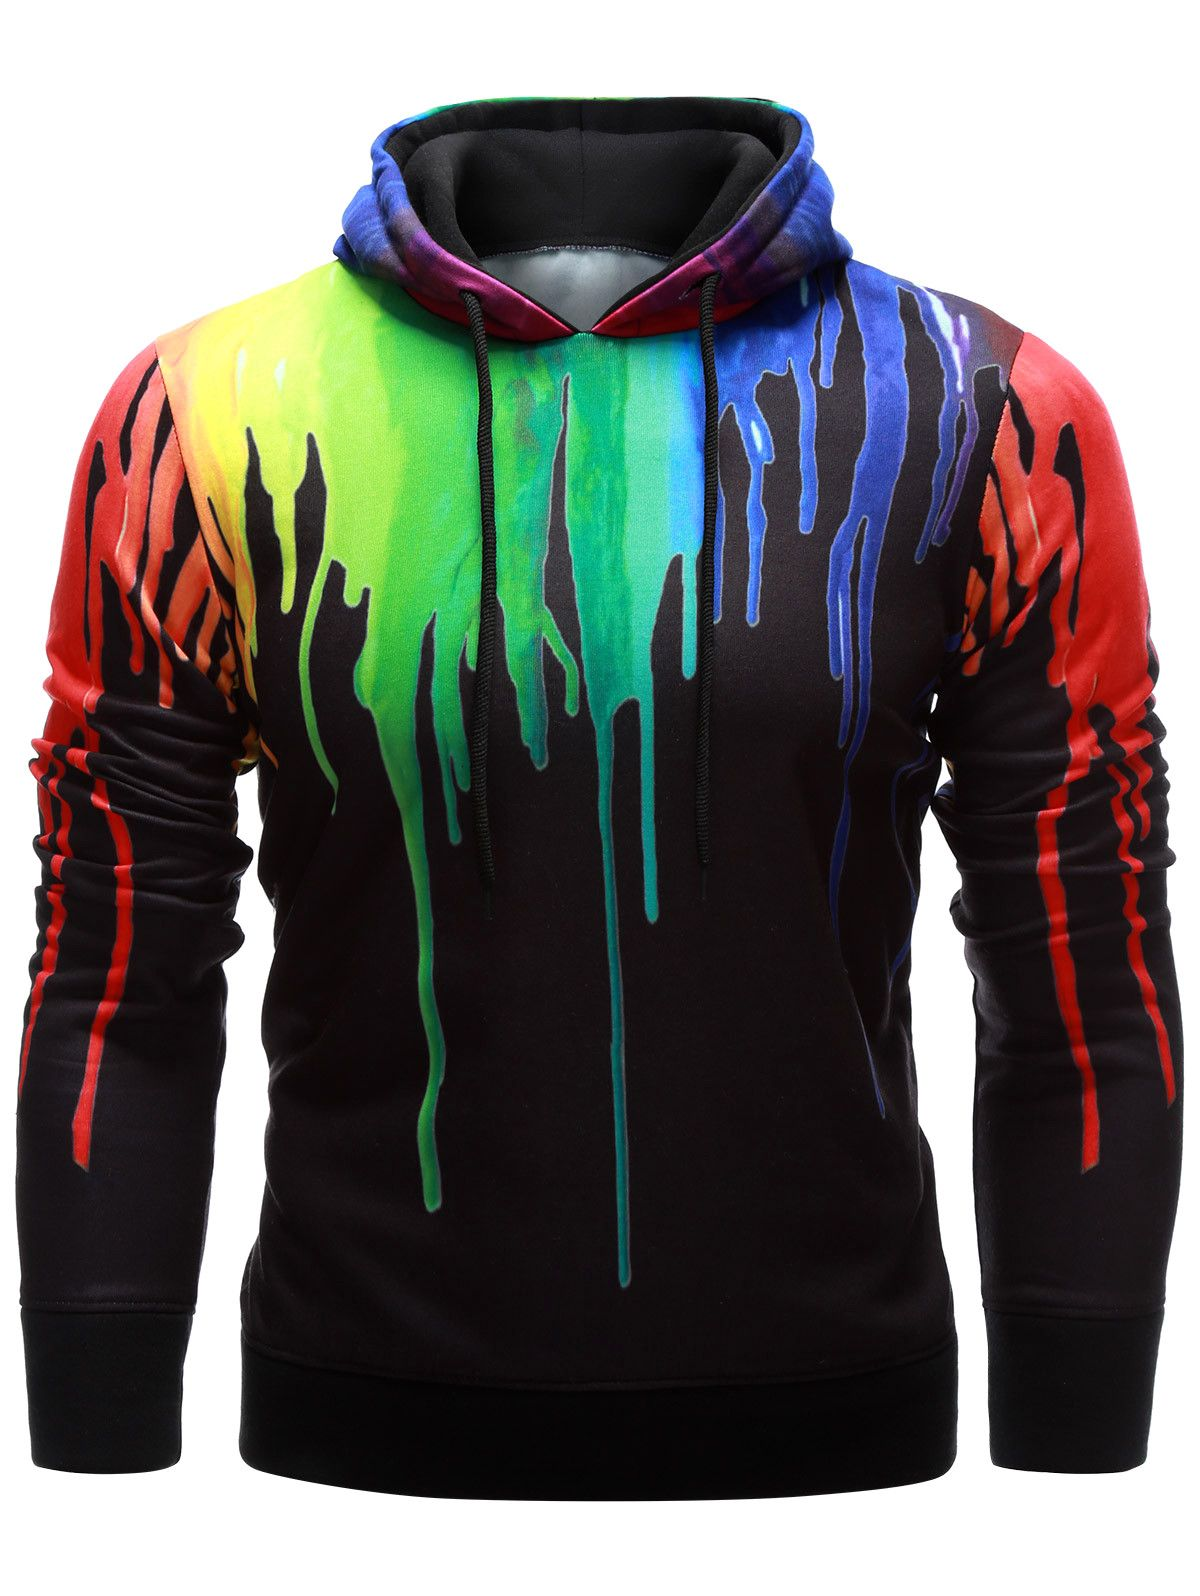 Men's Clothing Kind-Hearted O-neck Superman Long Sleeves Hoodie 3d Men Sweatshirt Male Streetwear Fashion Women Sweatshirts Mens Make Clothes Coat Boy Girls